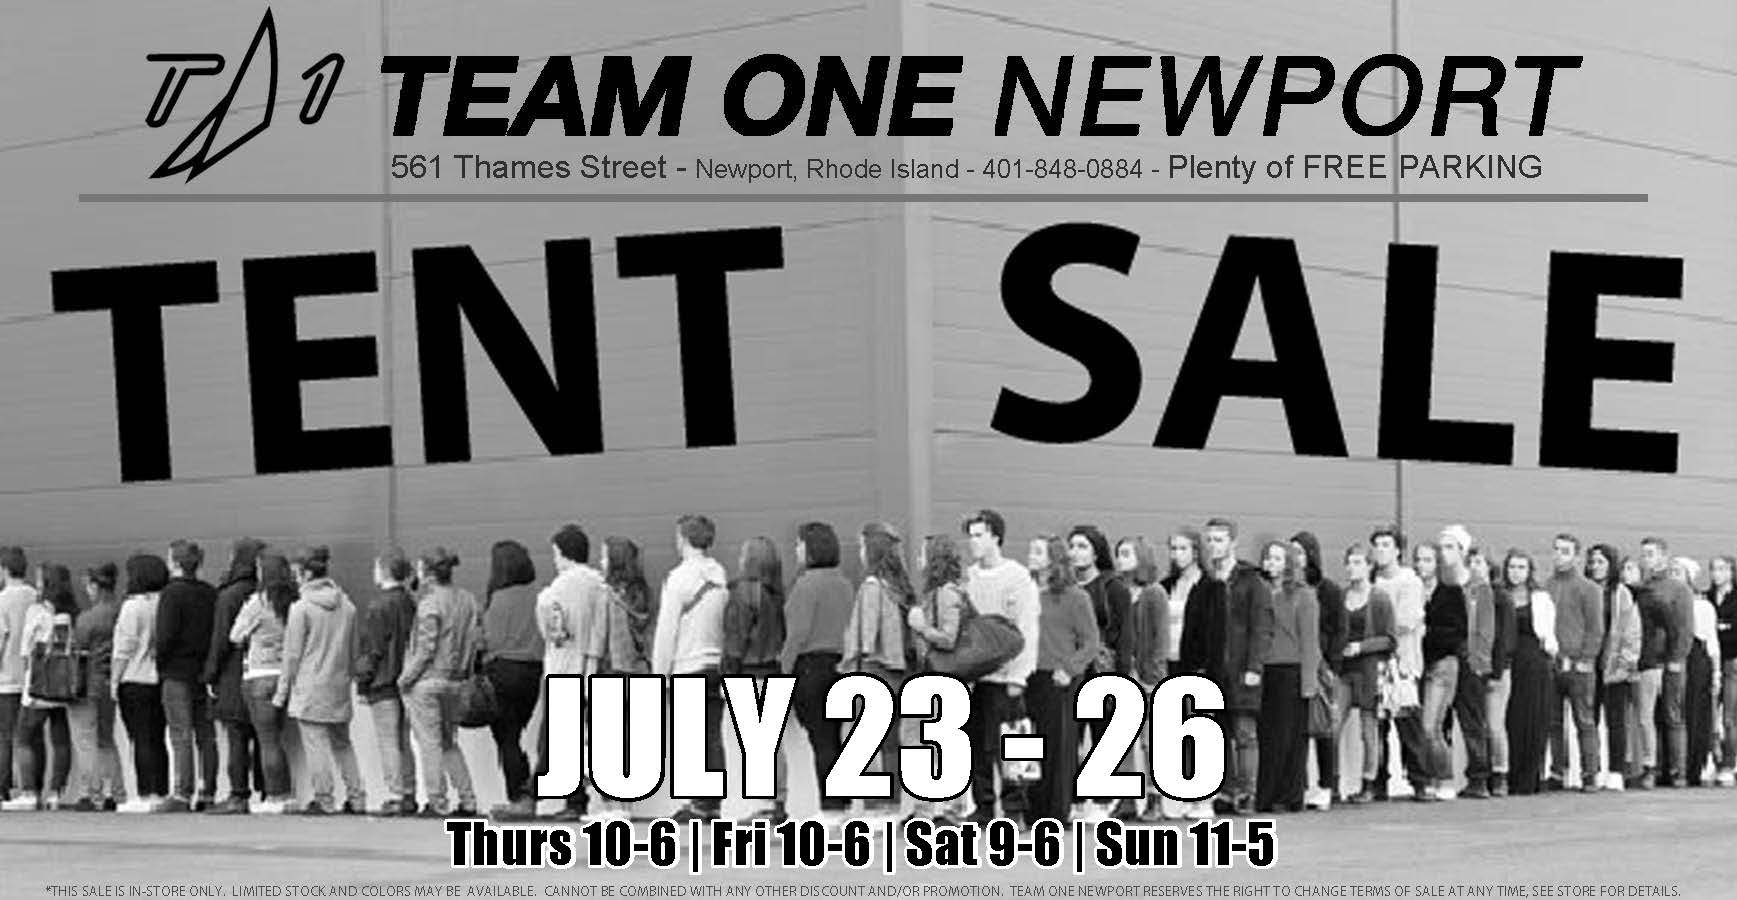 Team One Newport Web Specials/Sale Page